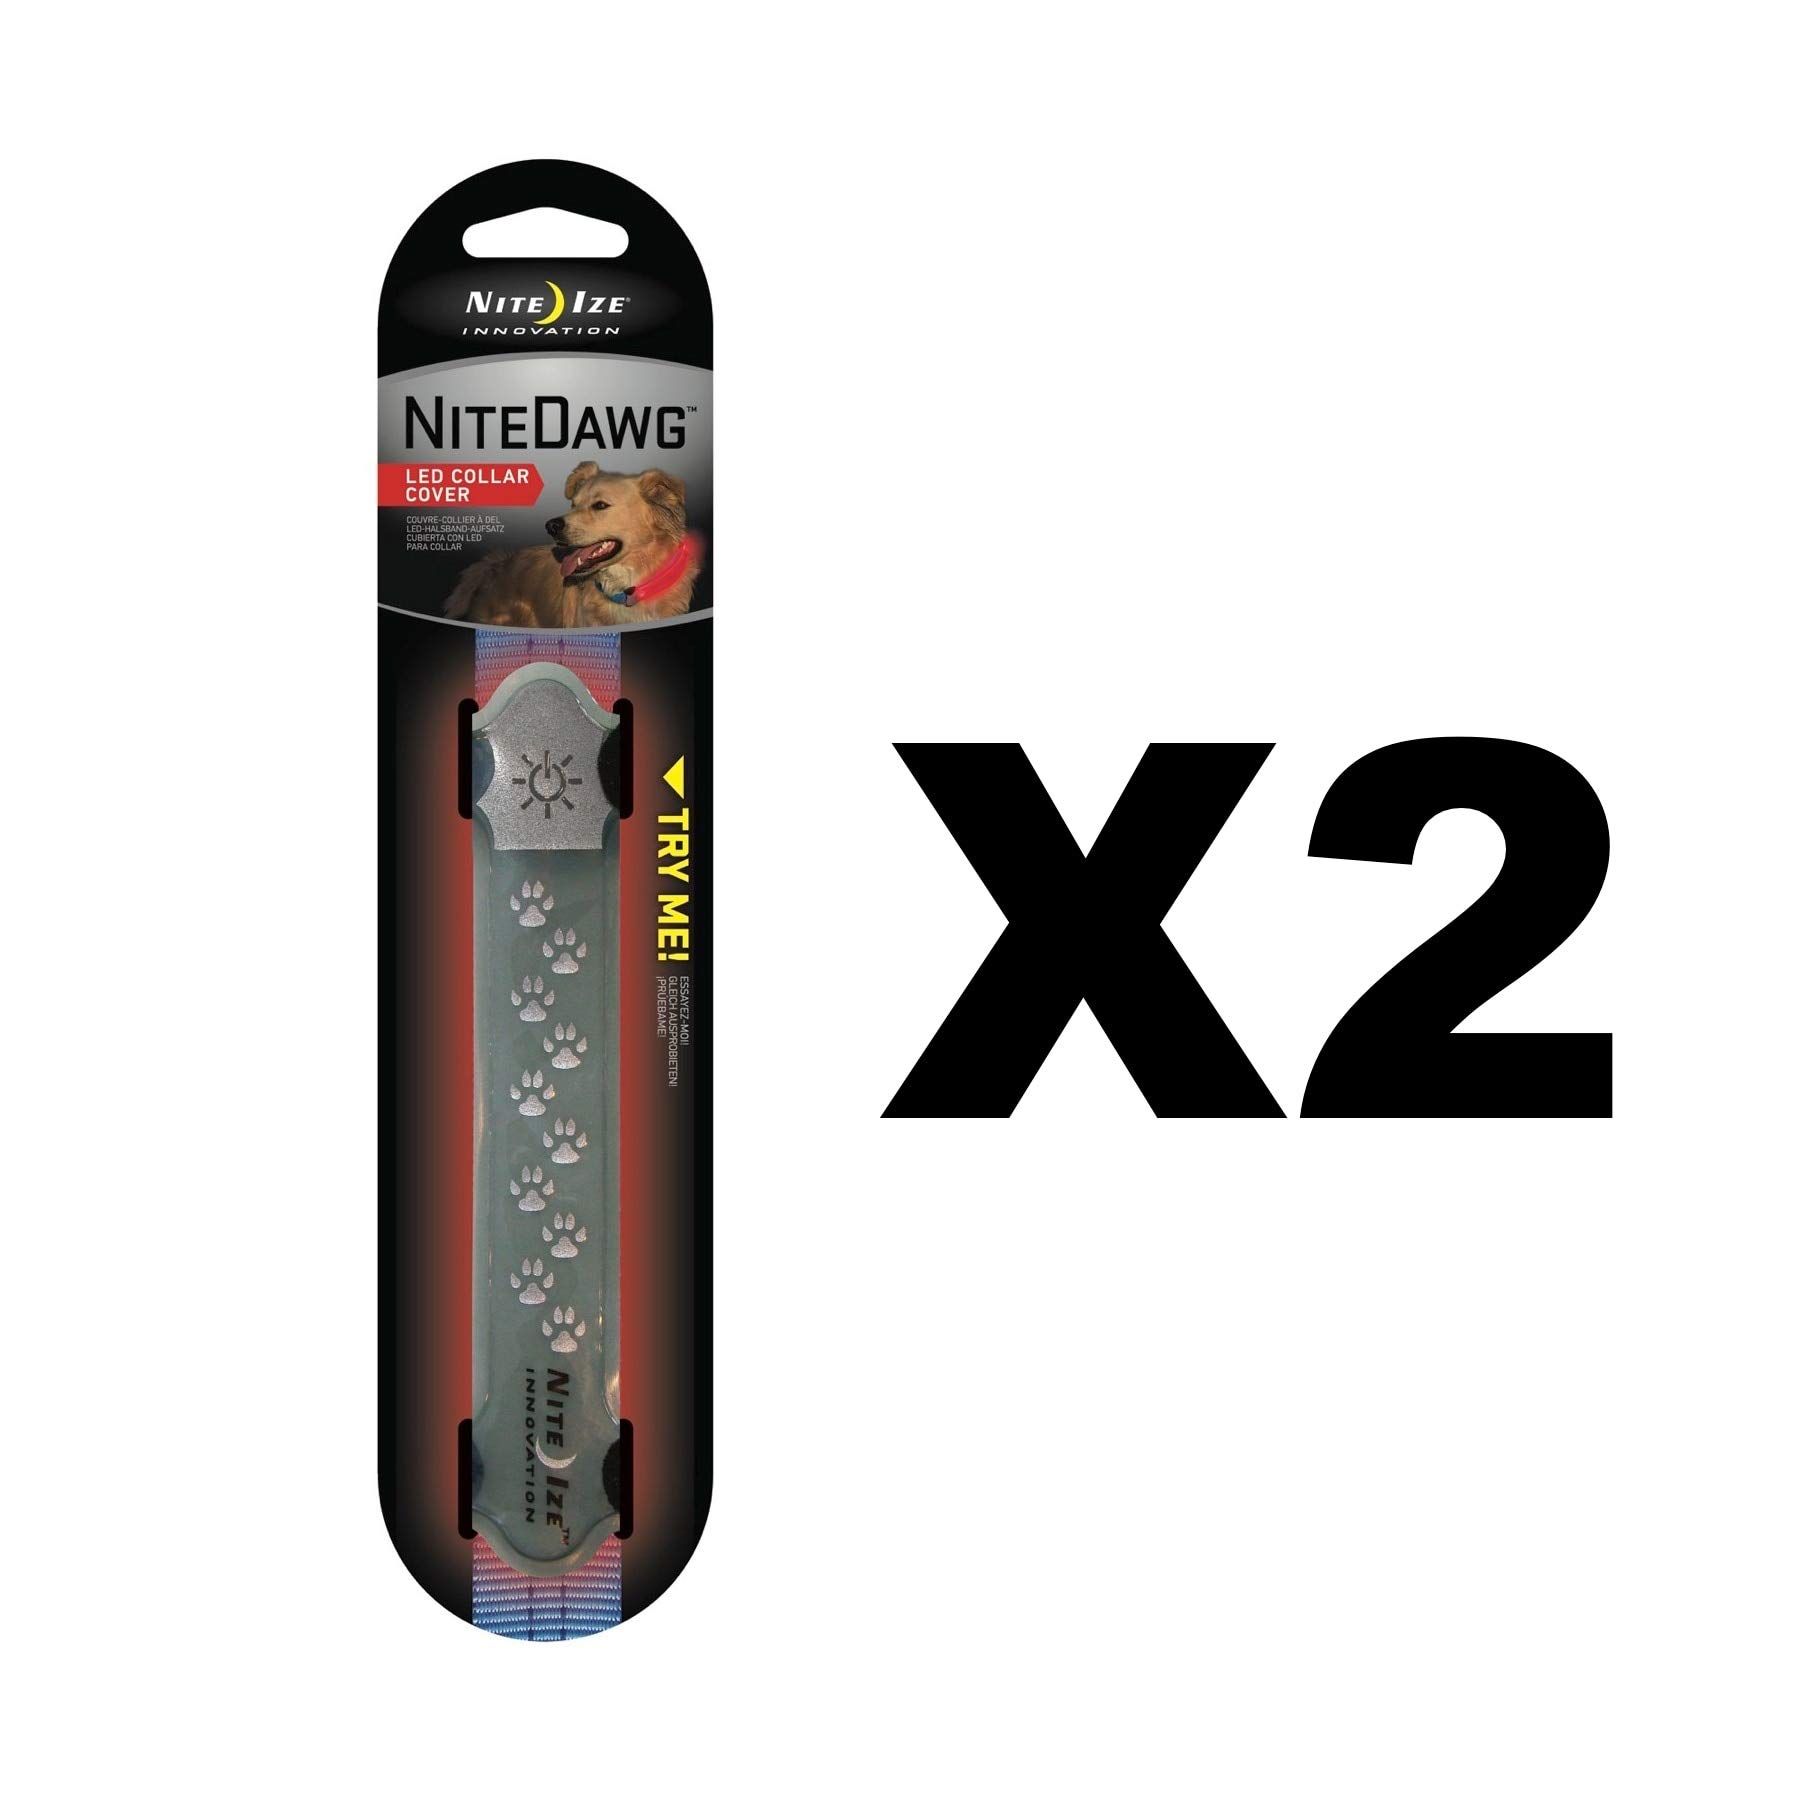 Nite Ize Nite Dawg LED Collar Cover Grey w/Red Safety Light Glow/Flash (2-Pack) by Nite Ize